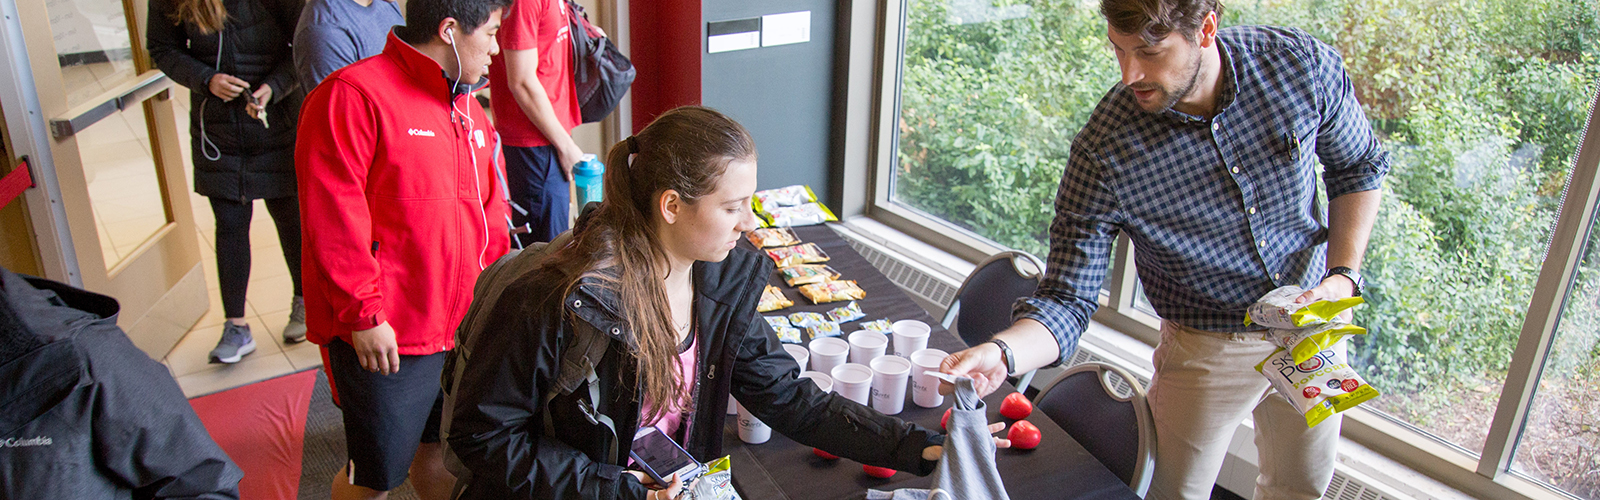 Photo of an employee handing a student a T shirt standing next to tables of free snacks and prizes.